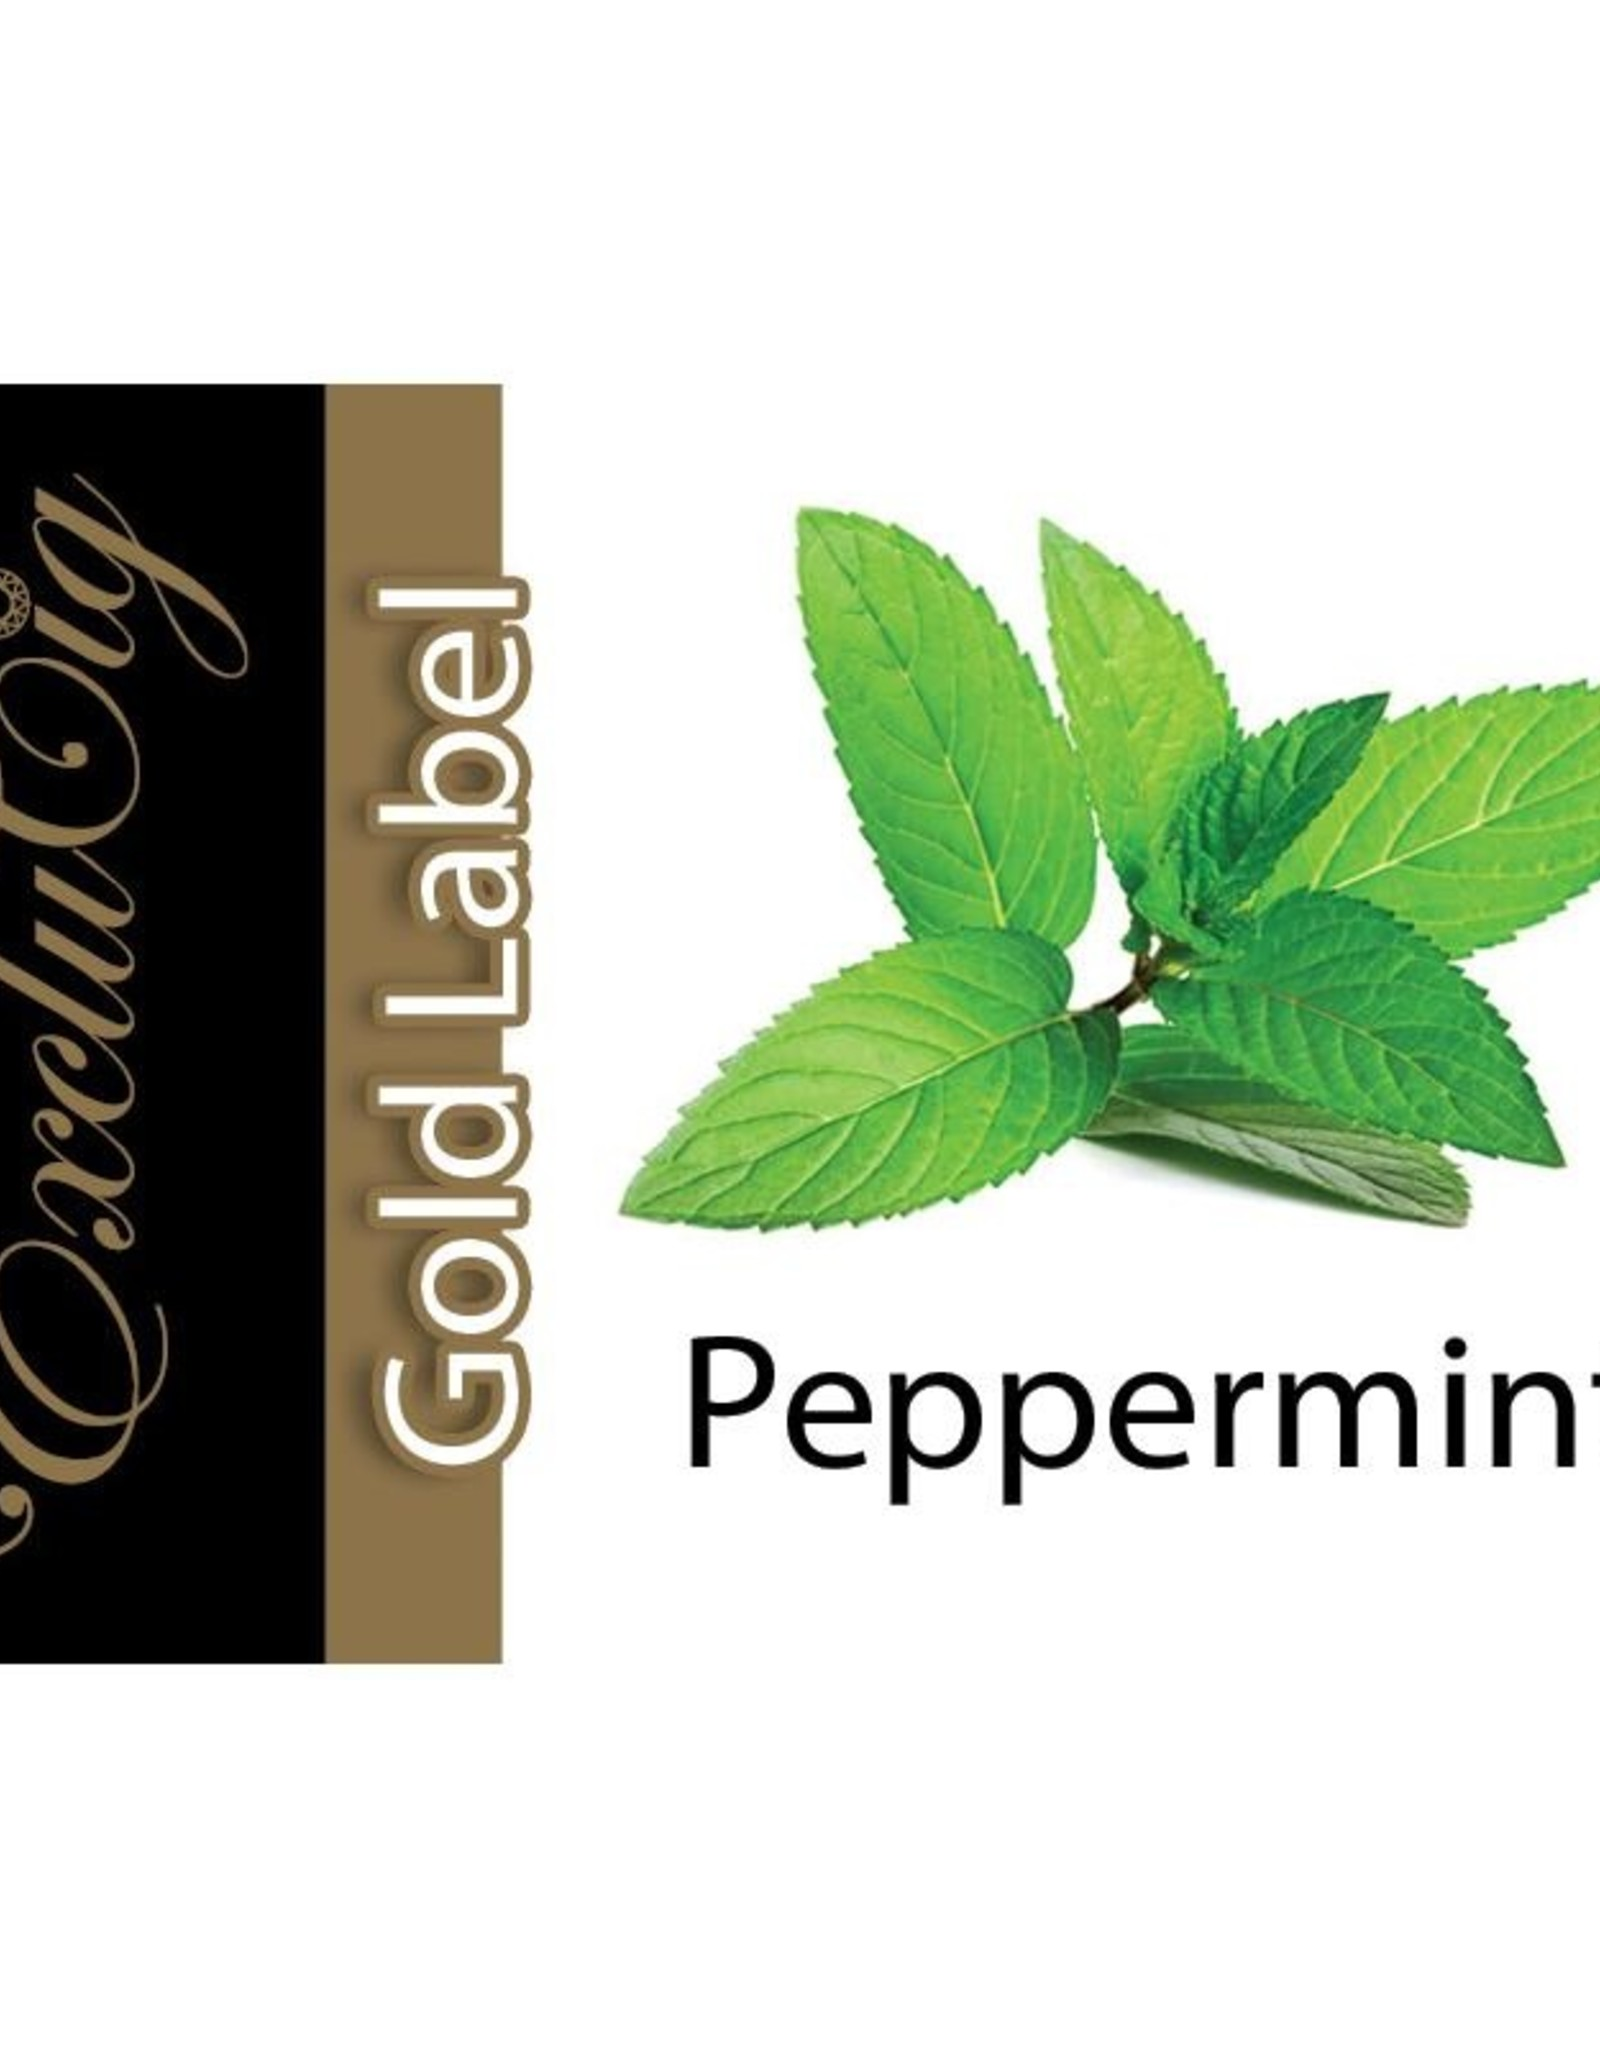 Exclucig Exclucig Gold Label E-liquid Peppermint 6 mg Nicotine